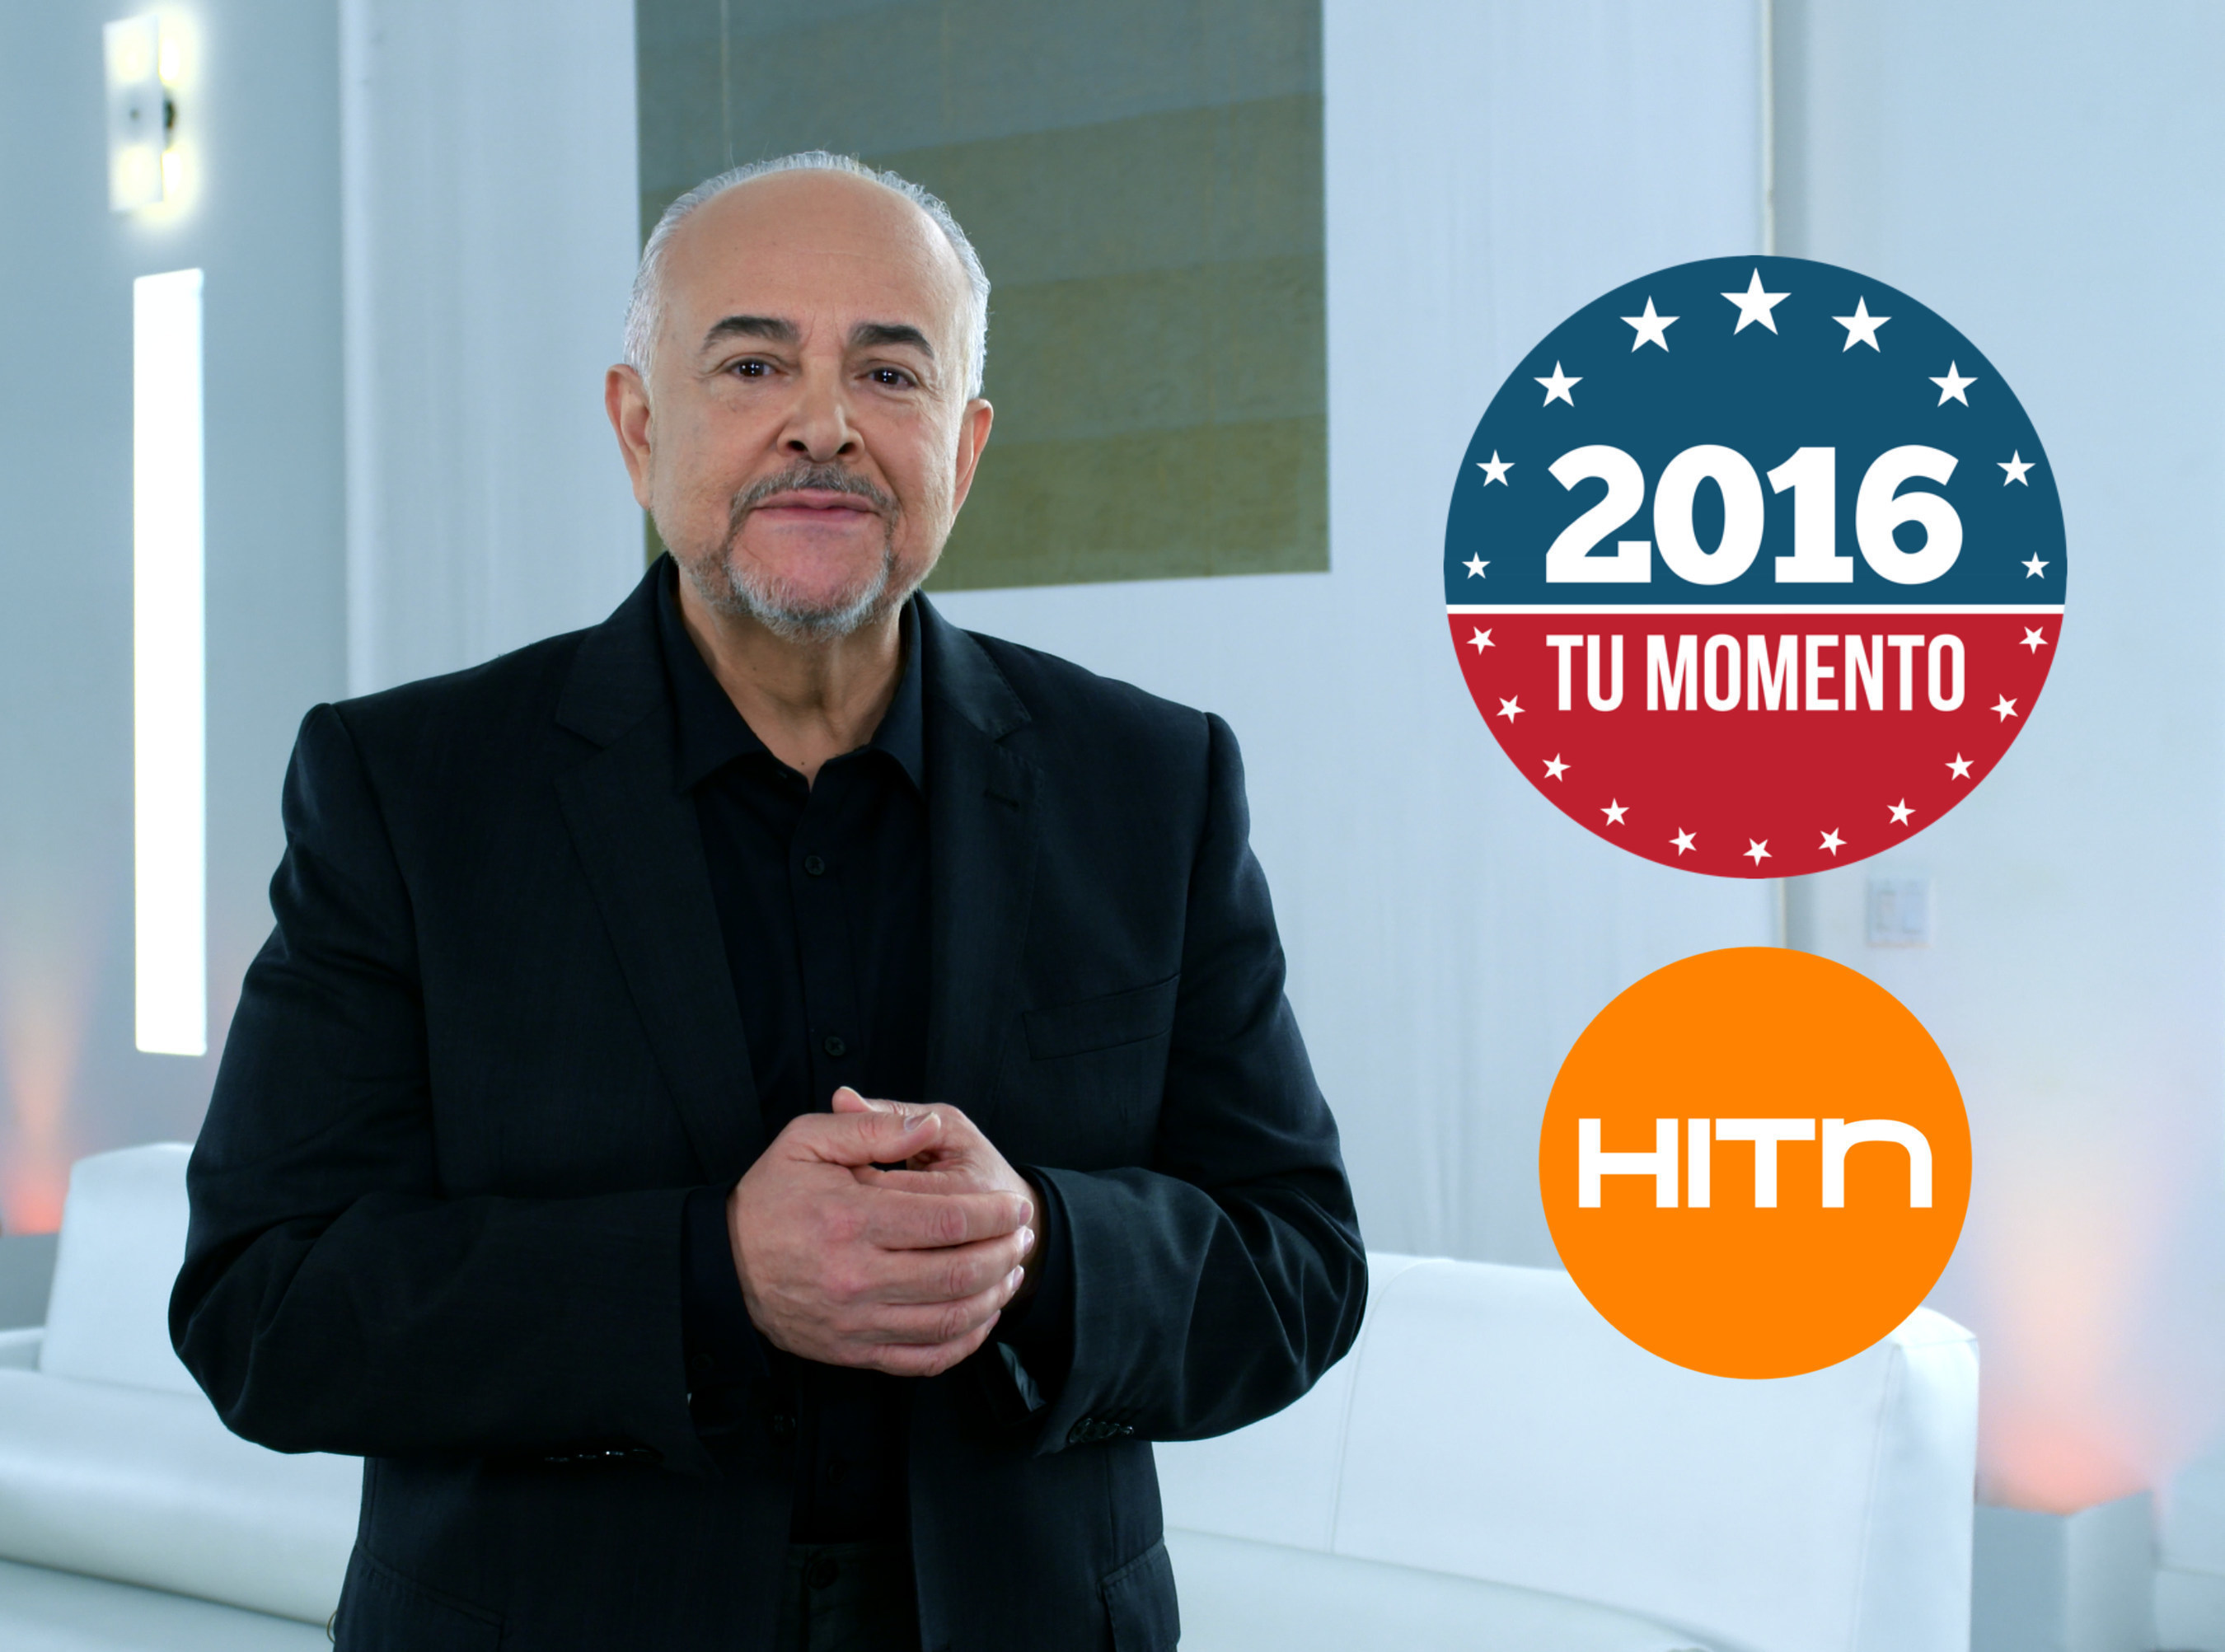 HITN-TV Presents a Summary of the Presidential Debate with an Emphasis on Issues Affecting the Latino Community